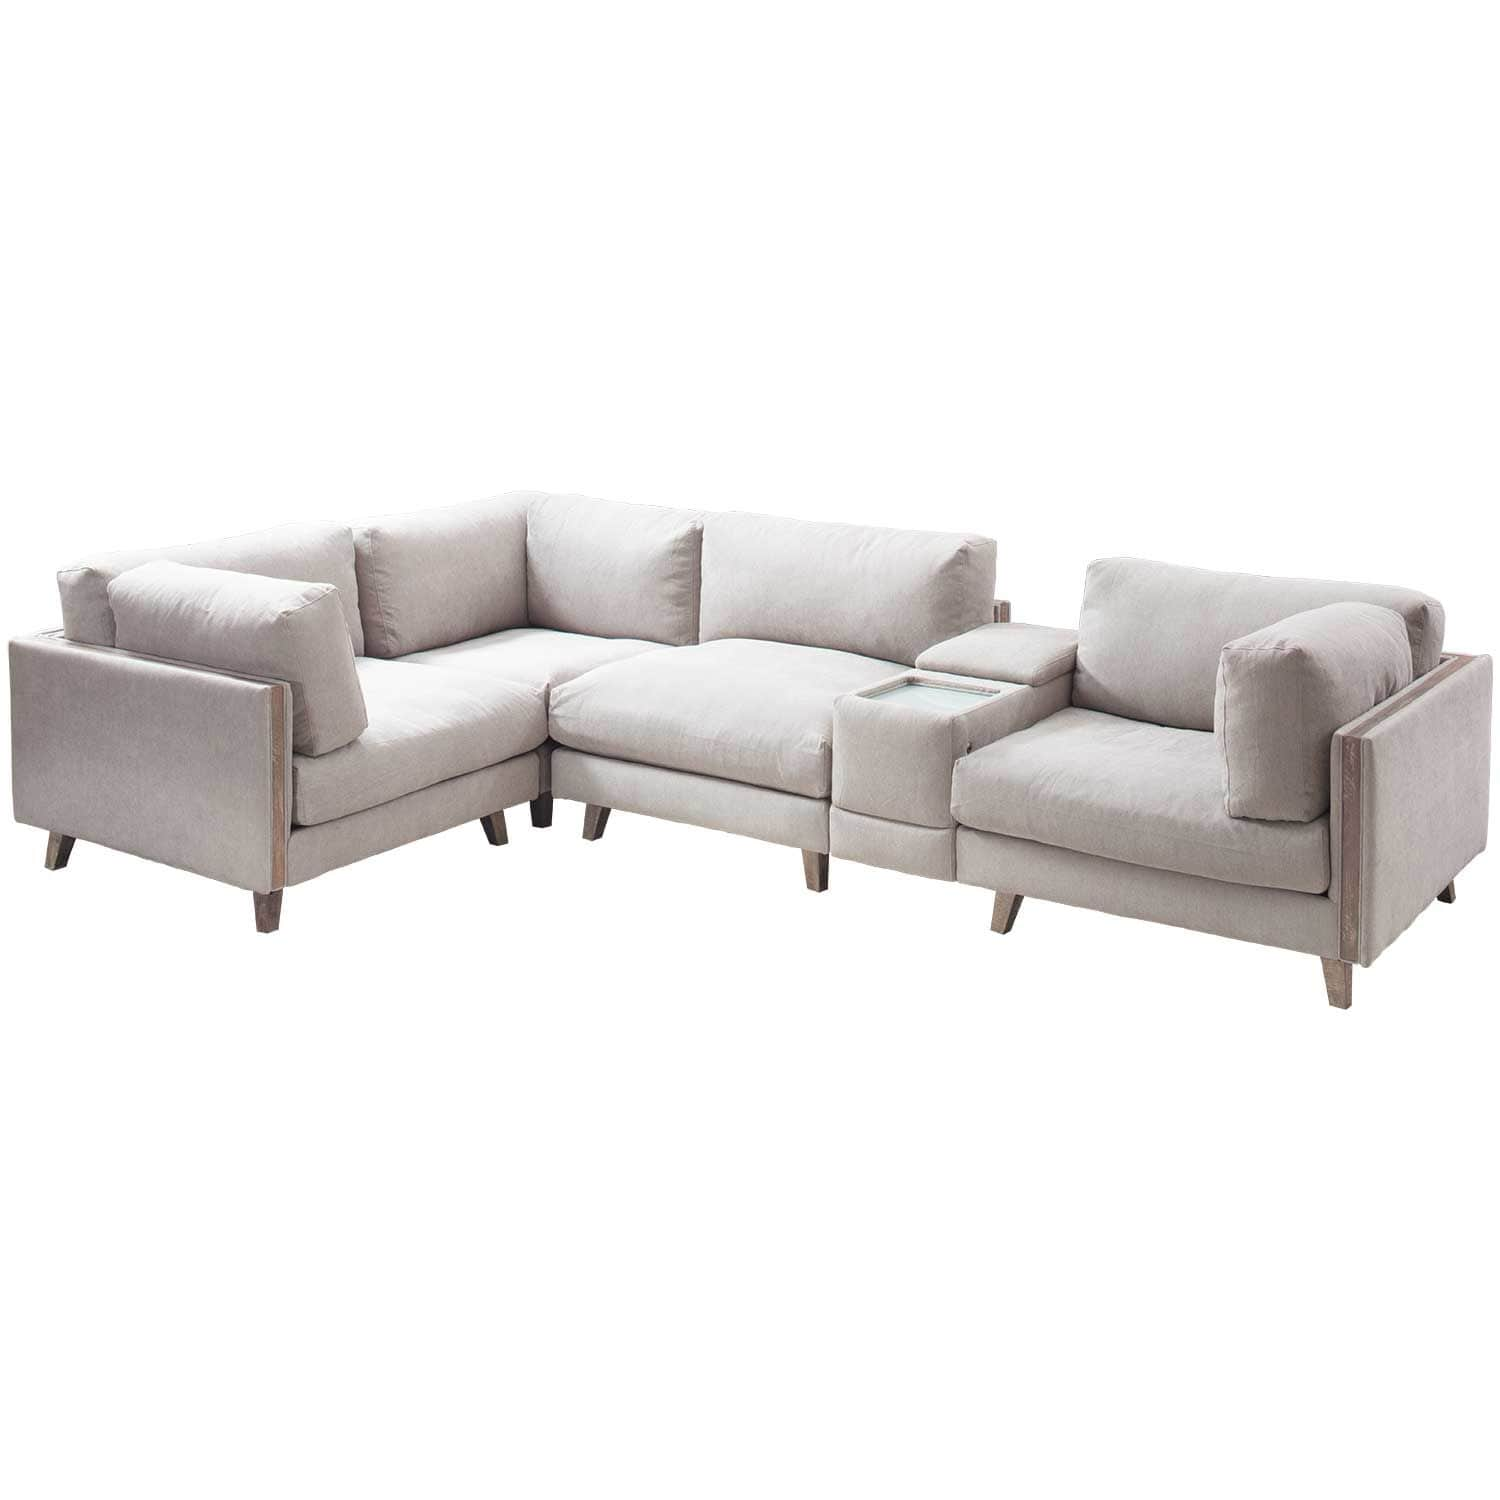 Macyn 5 Piece Sectional